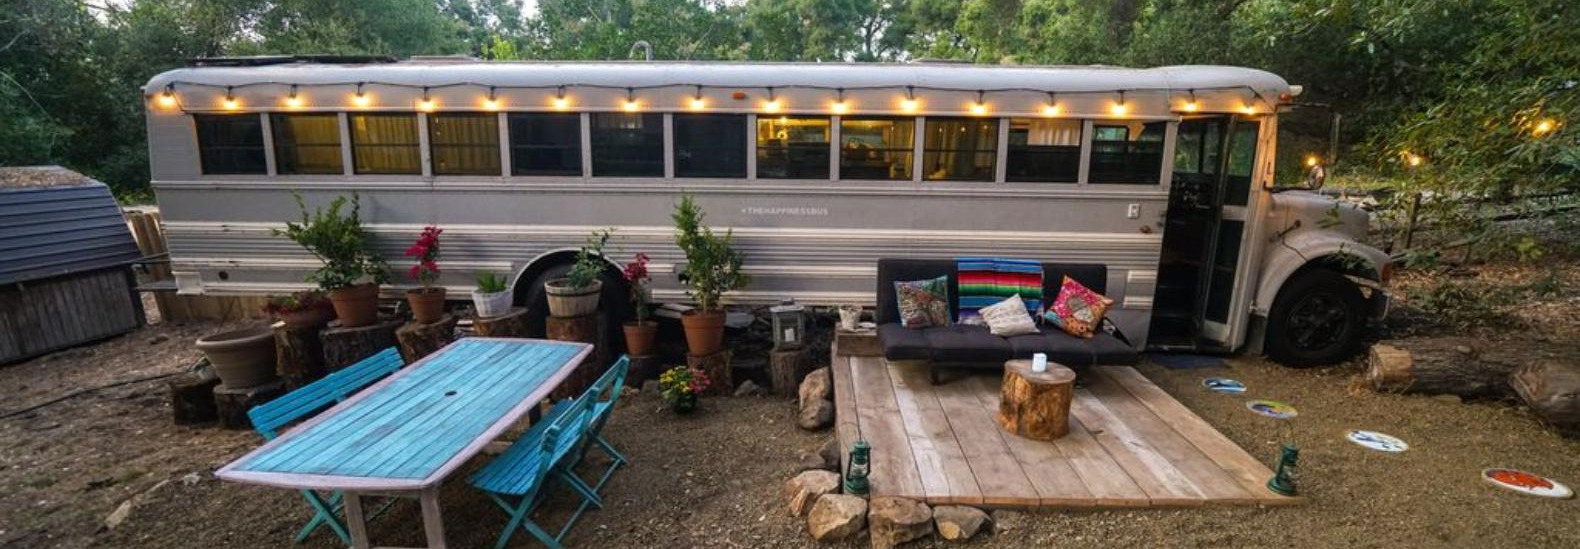 A converted school bus is now a glamping retreat in California